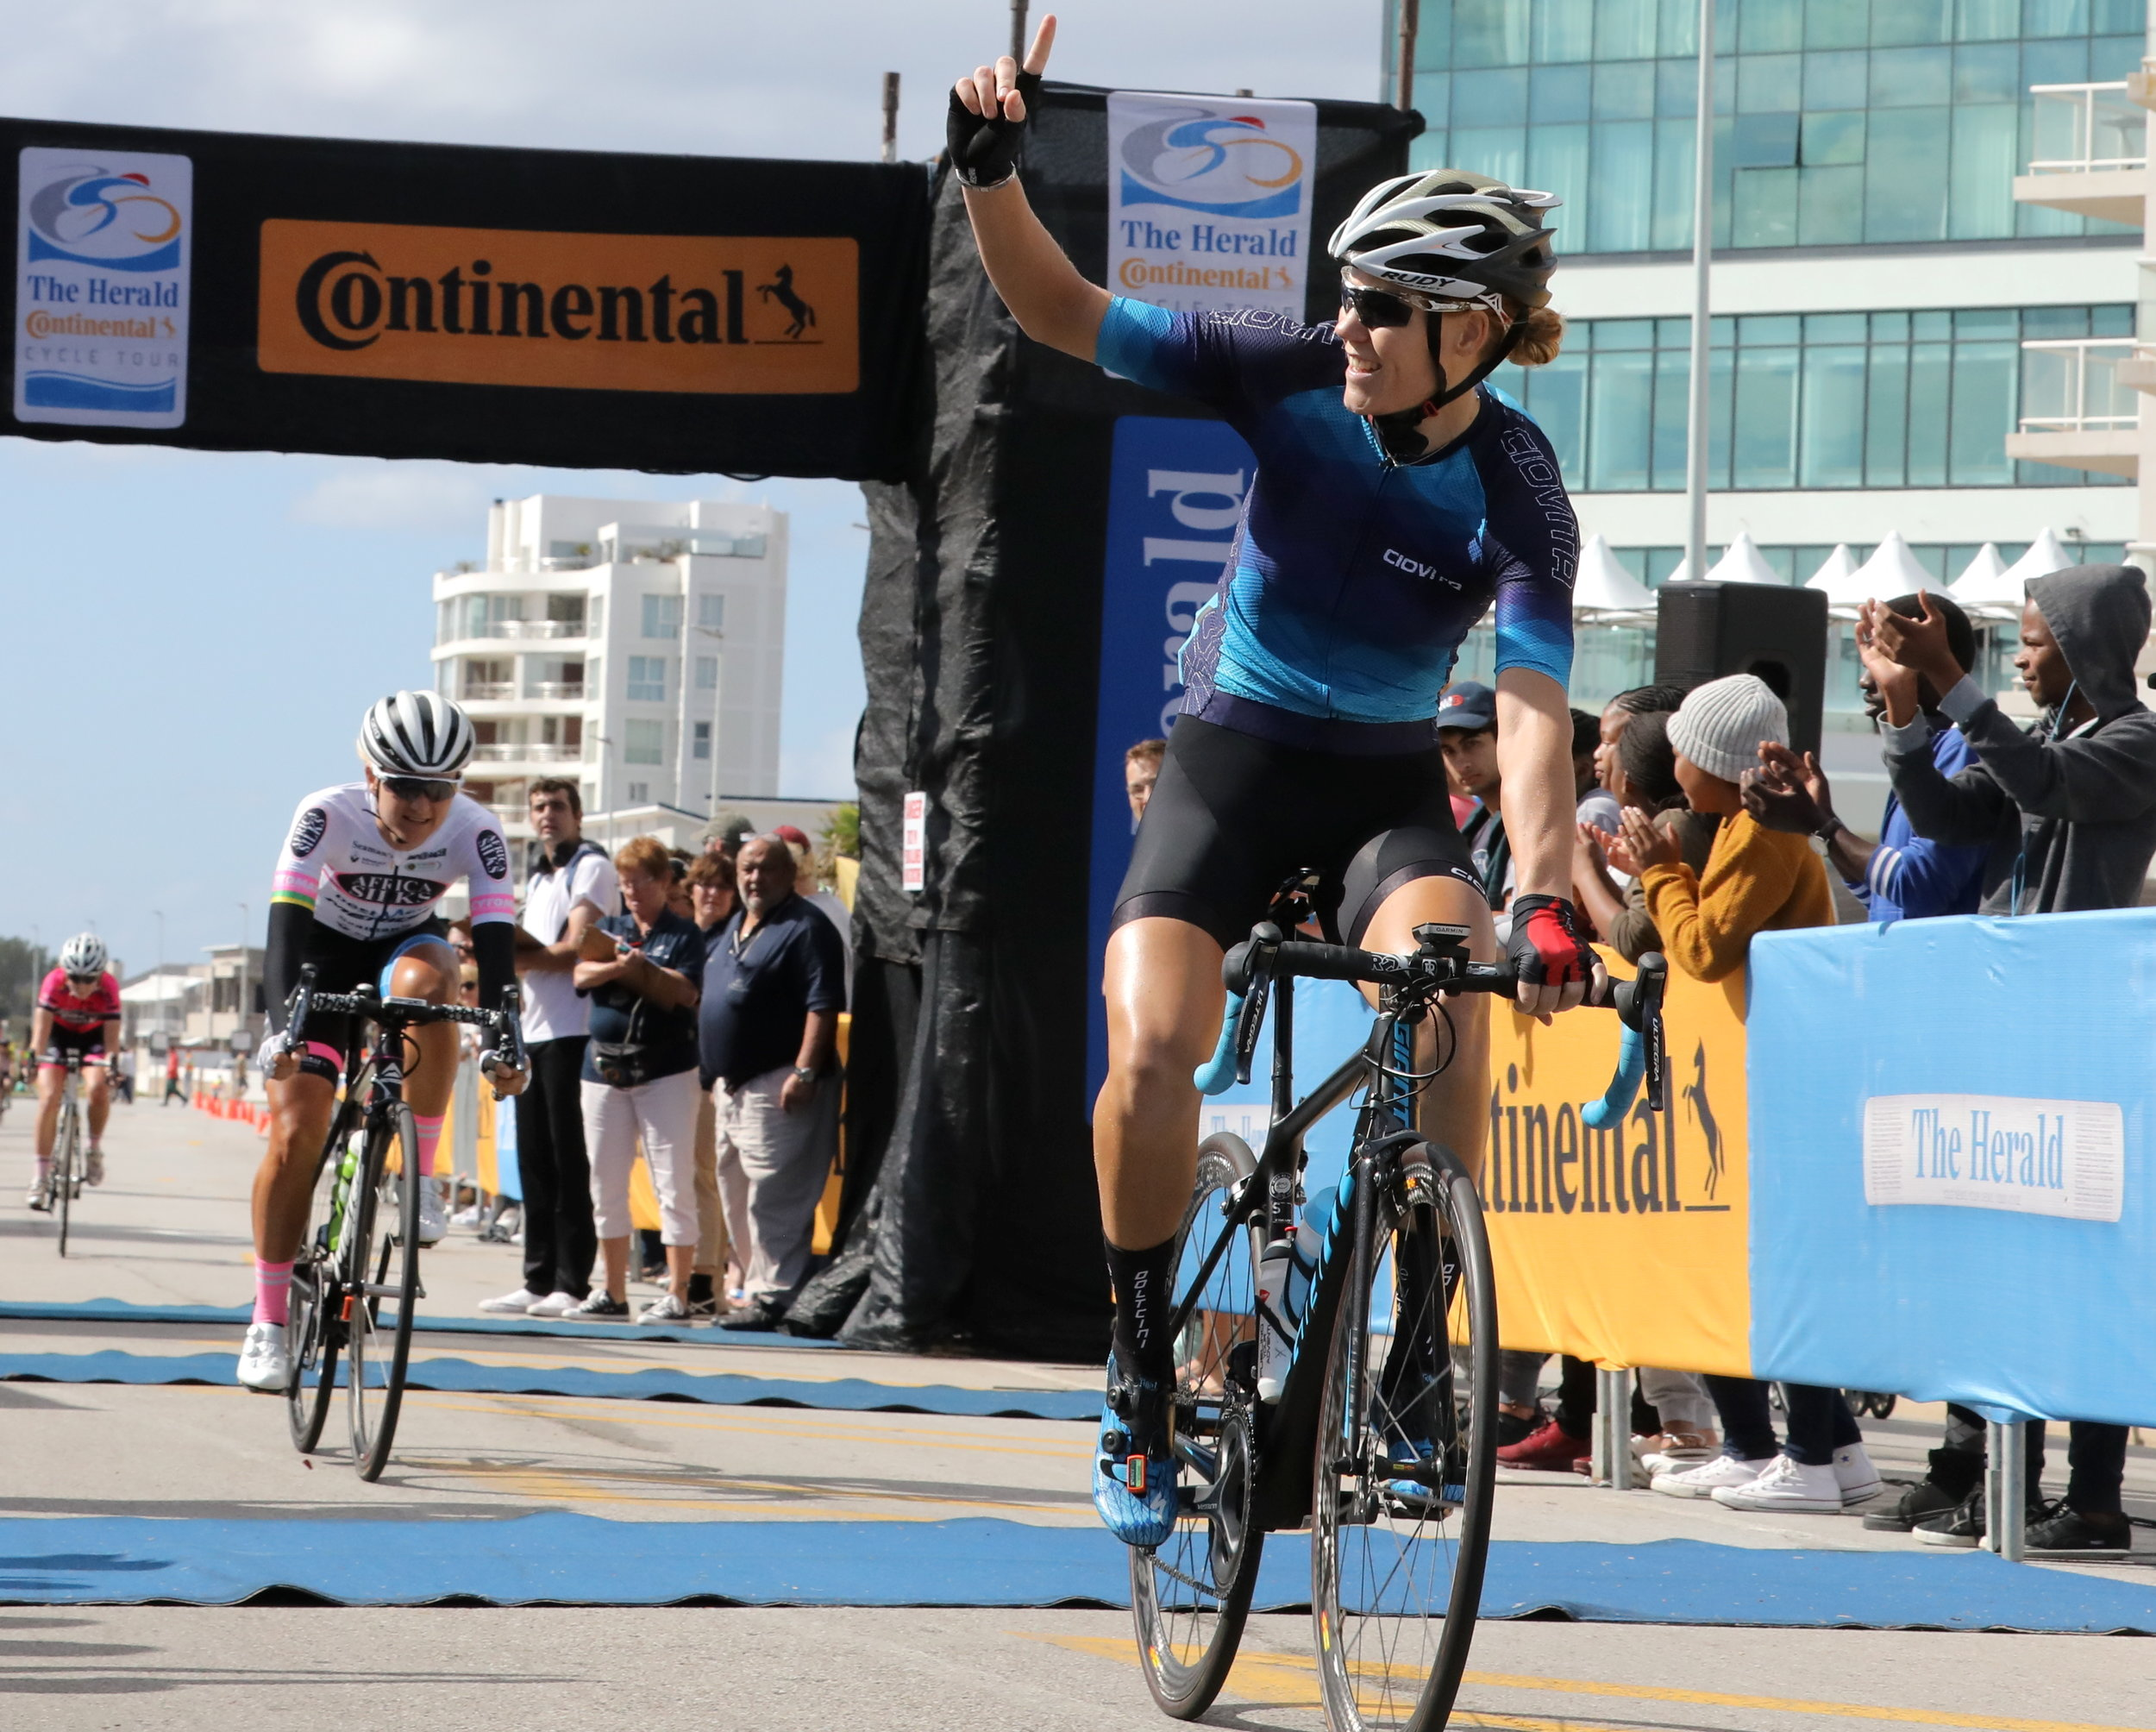 WOMAN POWER: The Herald Continental Cycle Tour women's winner Maroesjka Matthee, of Cape Town, salutes the crowd as she crosses the finish line ahead of Port Elizabeth's racing queen Anriette Schoeman close behind Picture: FREDLIN ADRIAAN